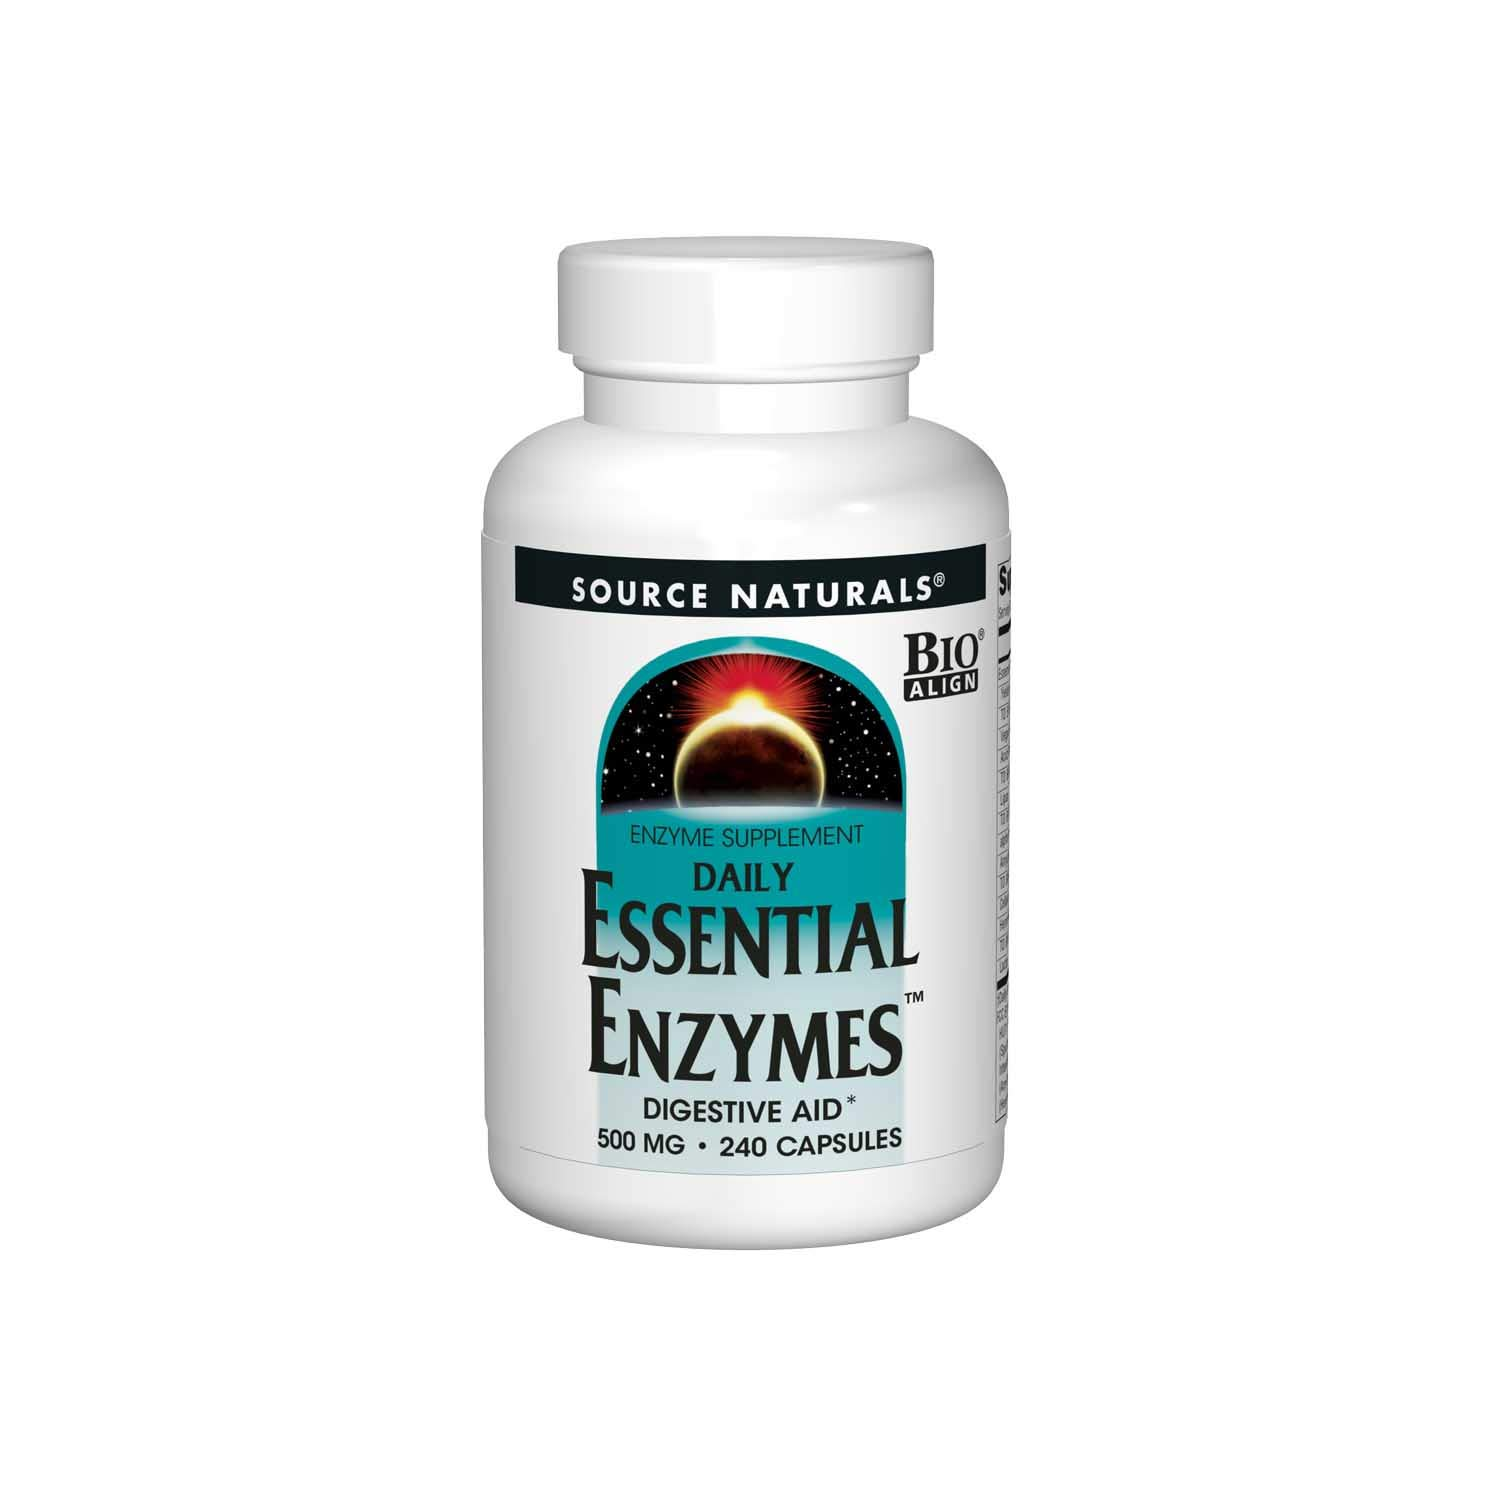 Source Naturals Essential Enzymes 500mg Bio-Aligned Multiple Enzyme Supplement Herbal Defense for Digestion, Gas, Constipation & Bloating Relief - Supports A Strong Immune System - 240 Capsules by Source Naturals